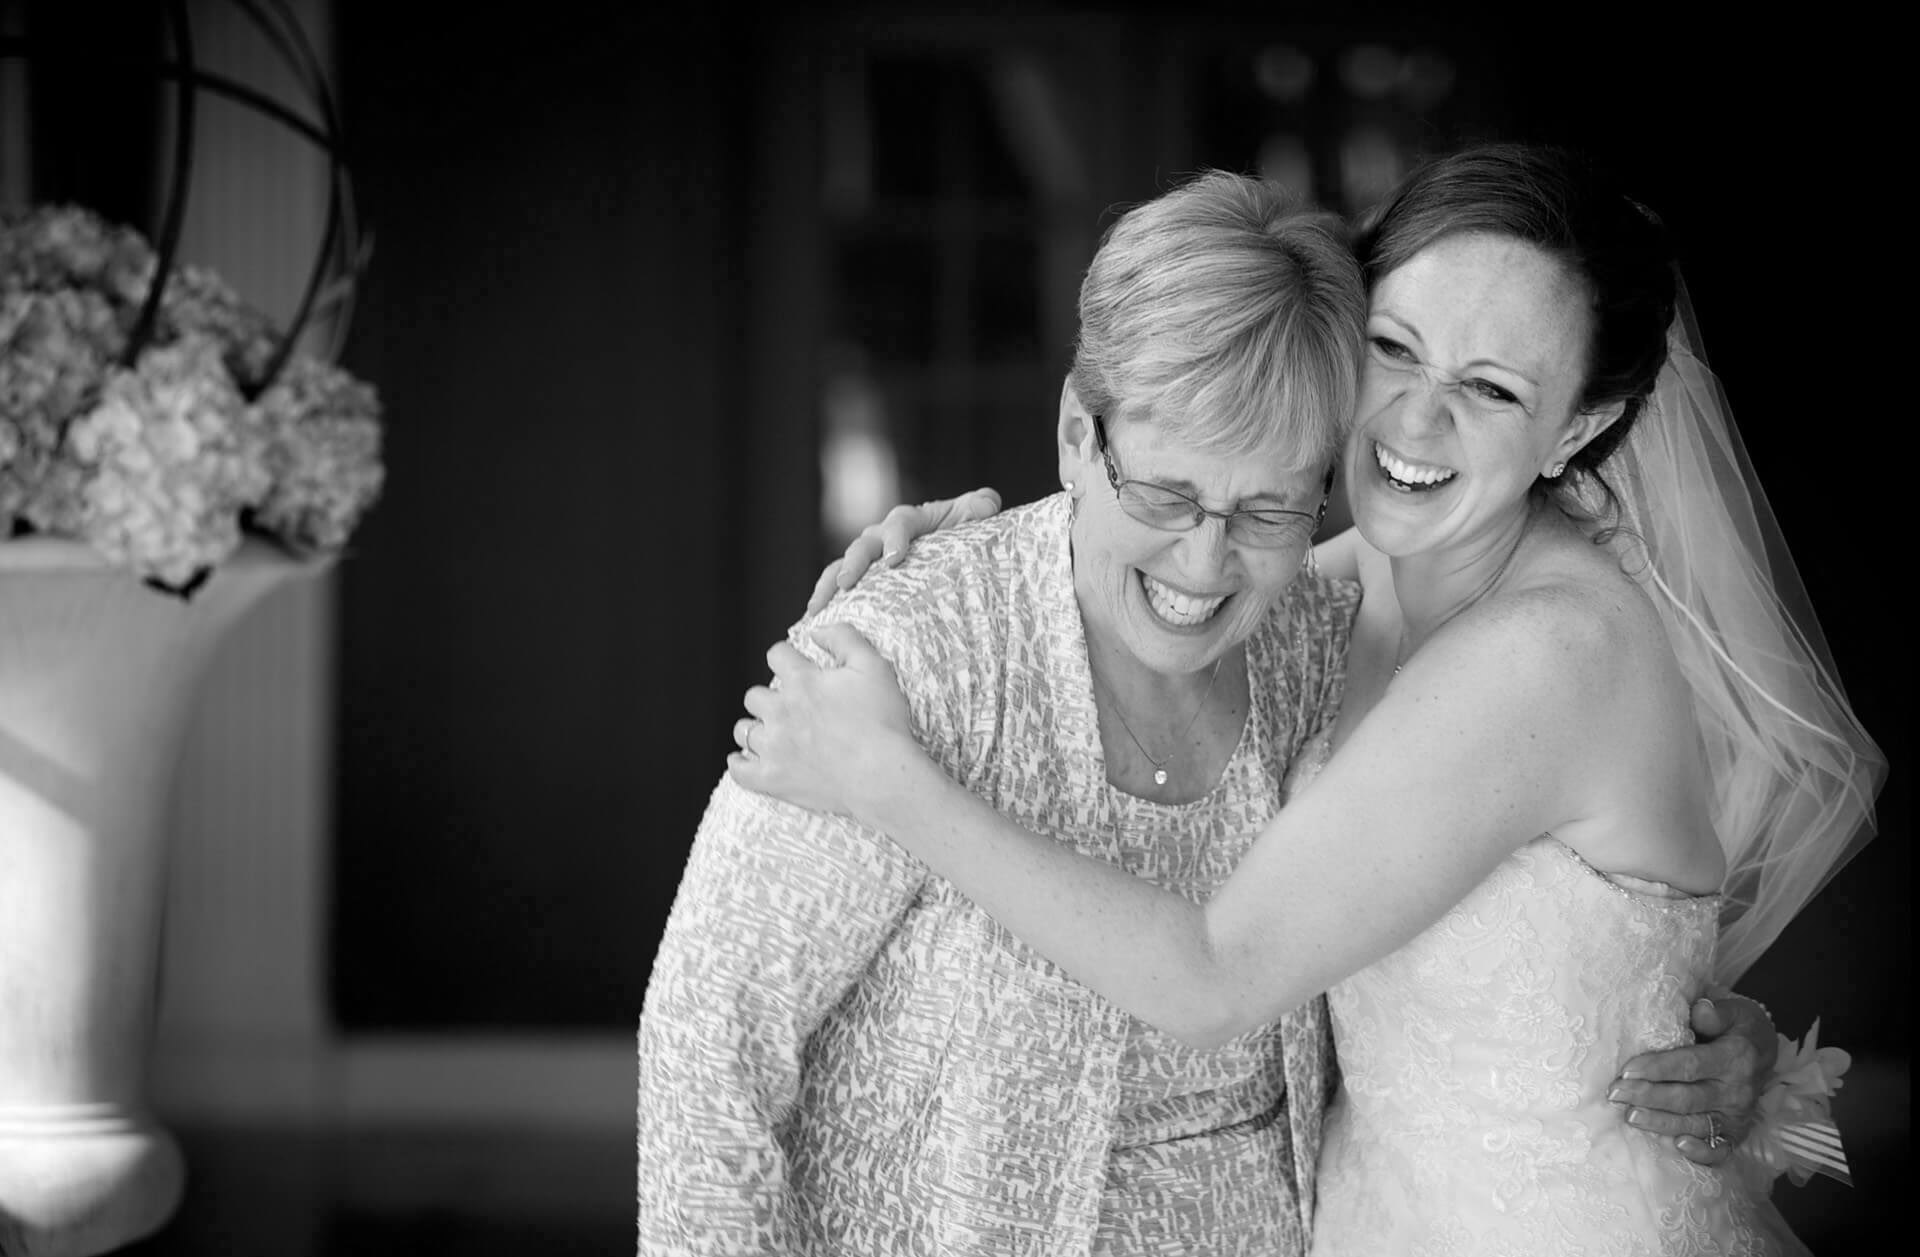 Michigan wedding photographer takes photojournalists photos of a bride hugging her grandmother after her wedding.